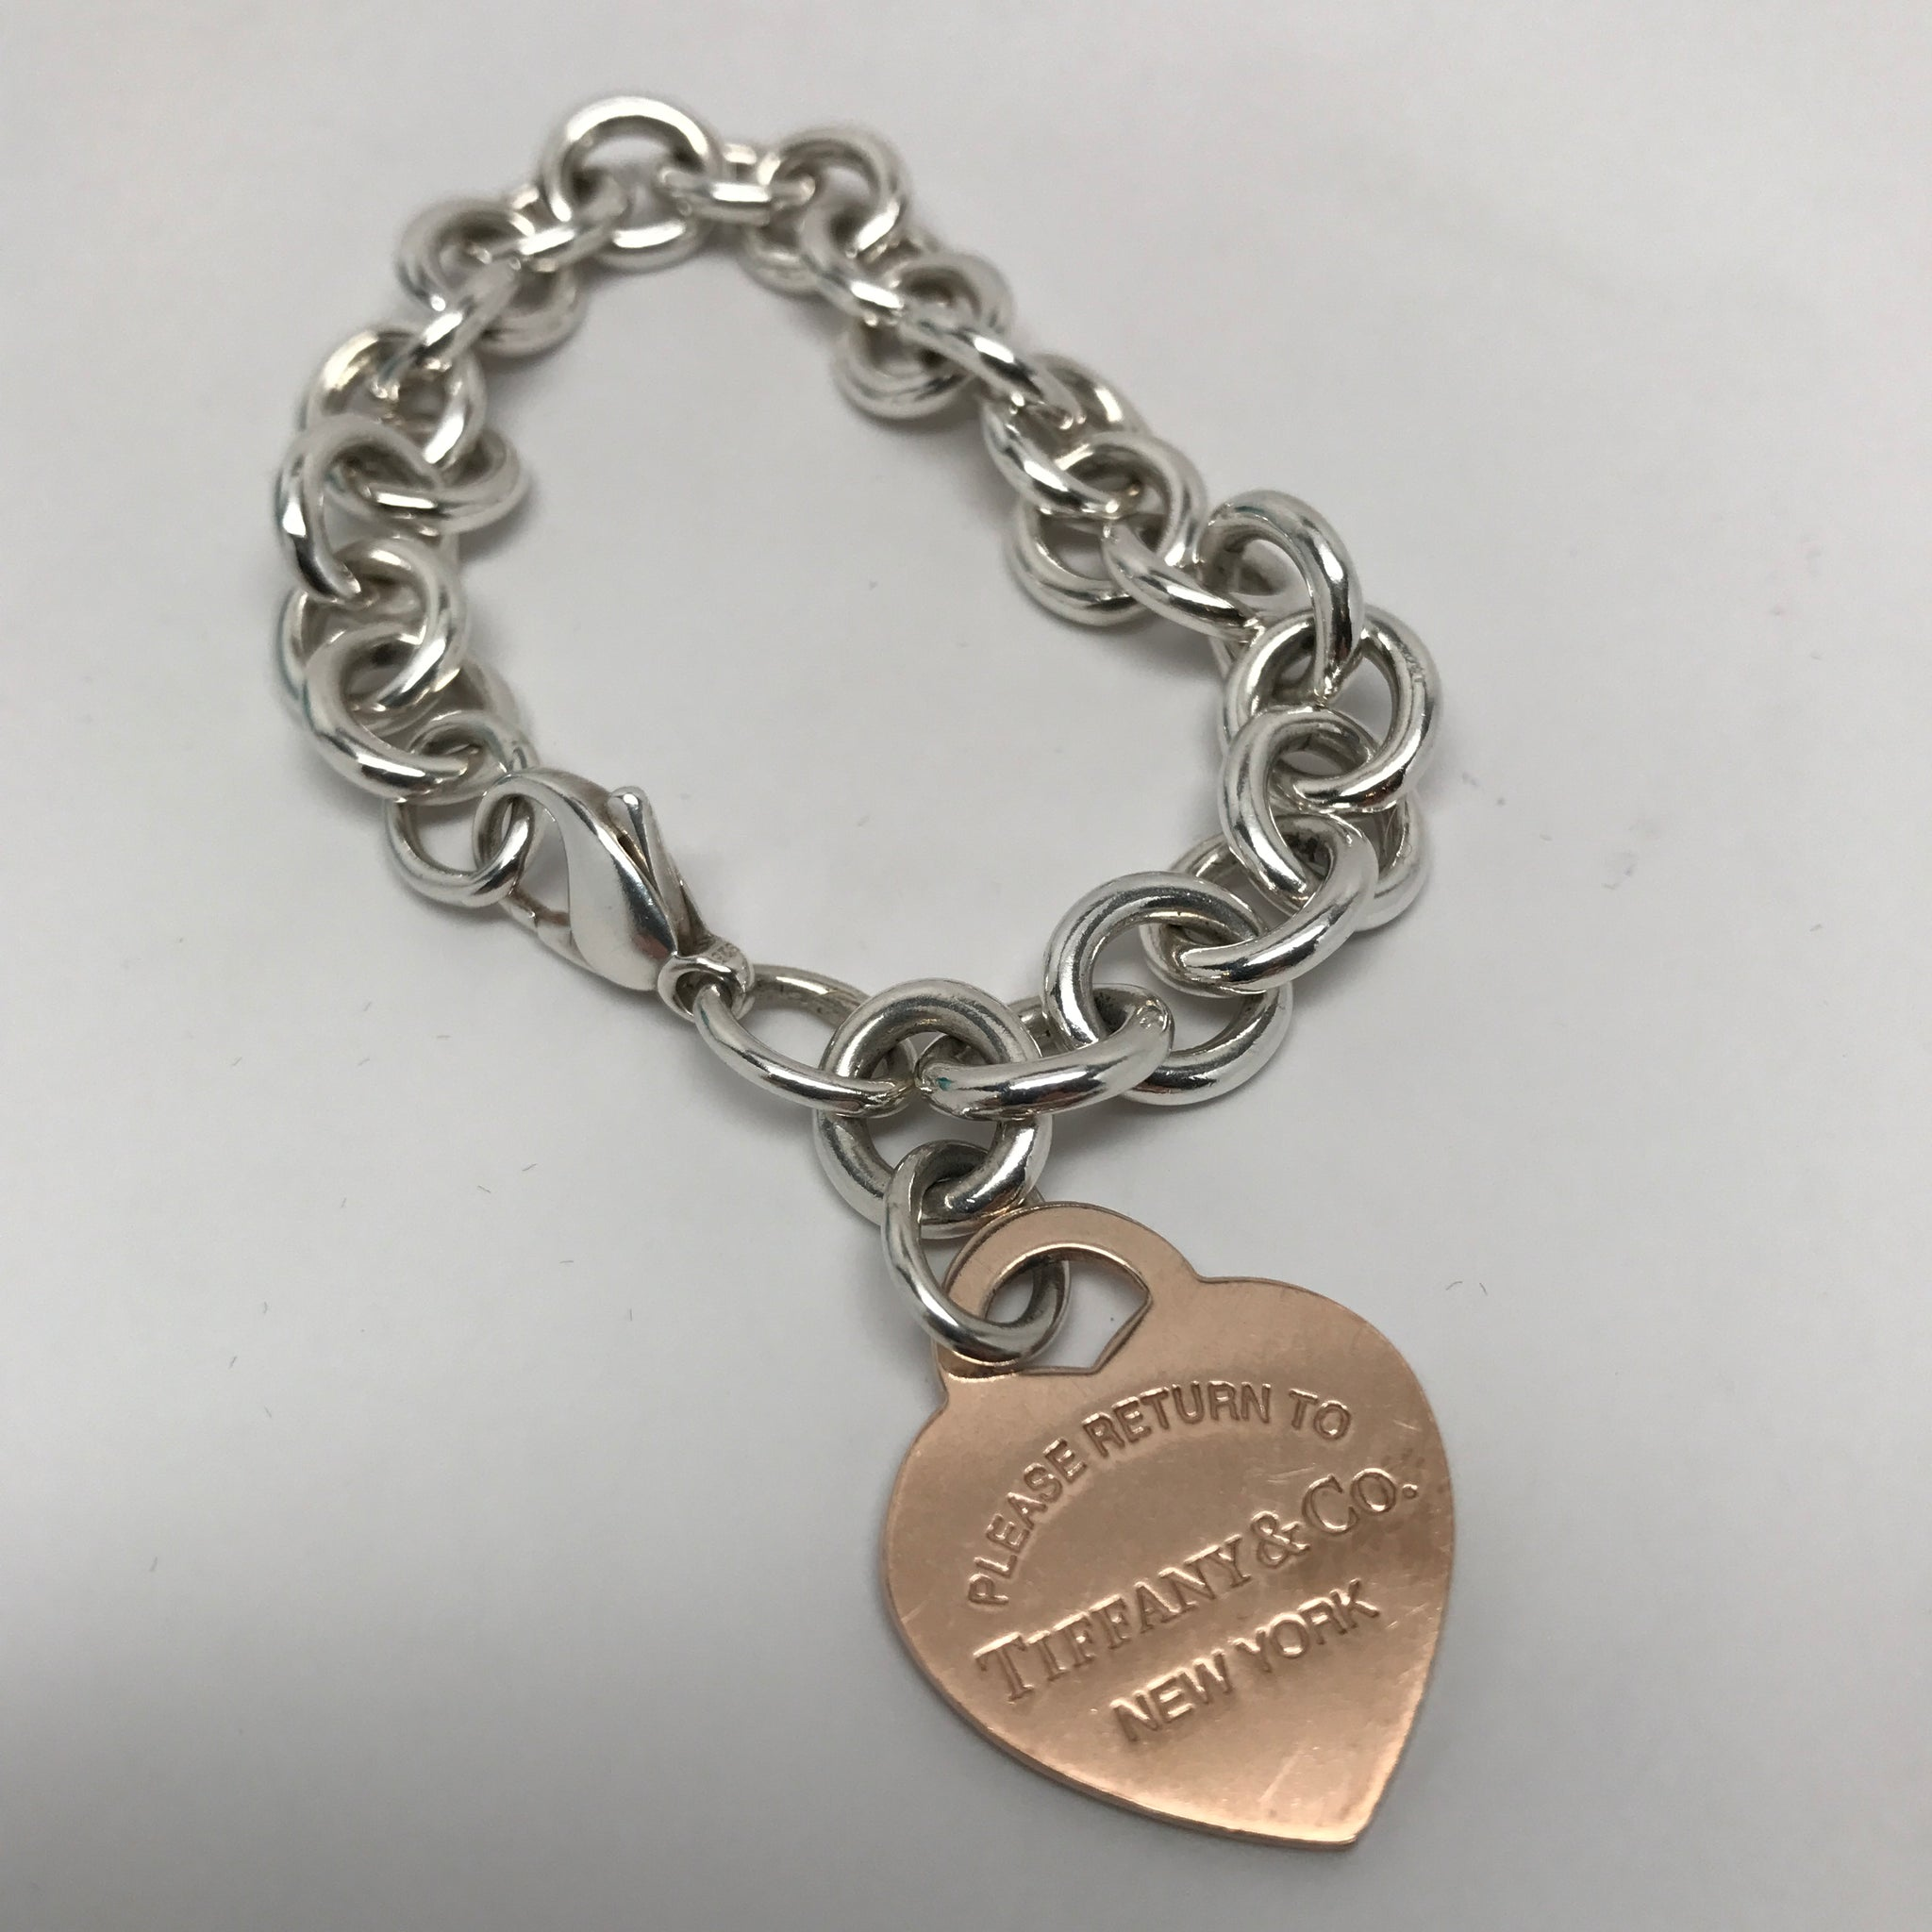 TIFFANY & CO. HEART TAG BRACELET - RUBEDO METAL HEART